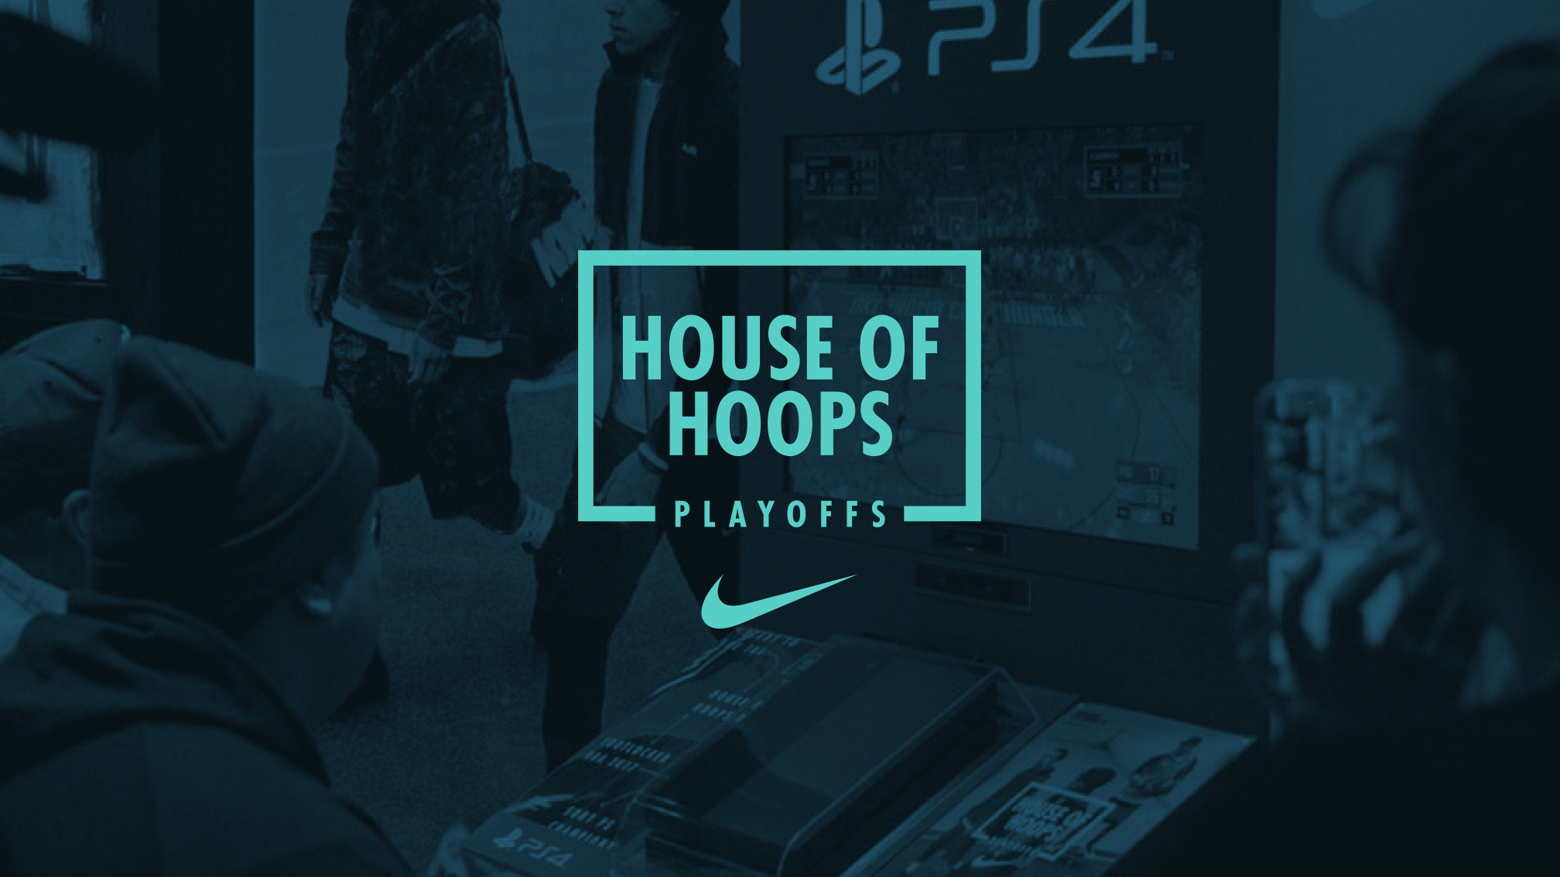 OLLIECO_House-of-Hoops-5_1560x1080